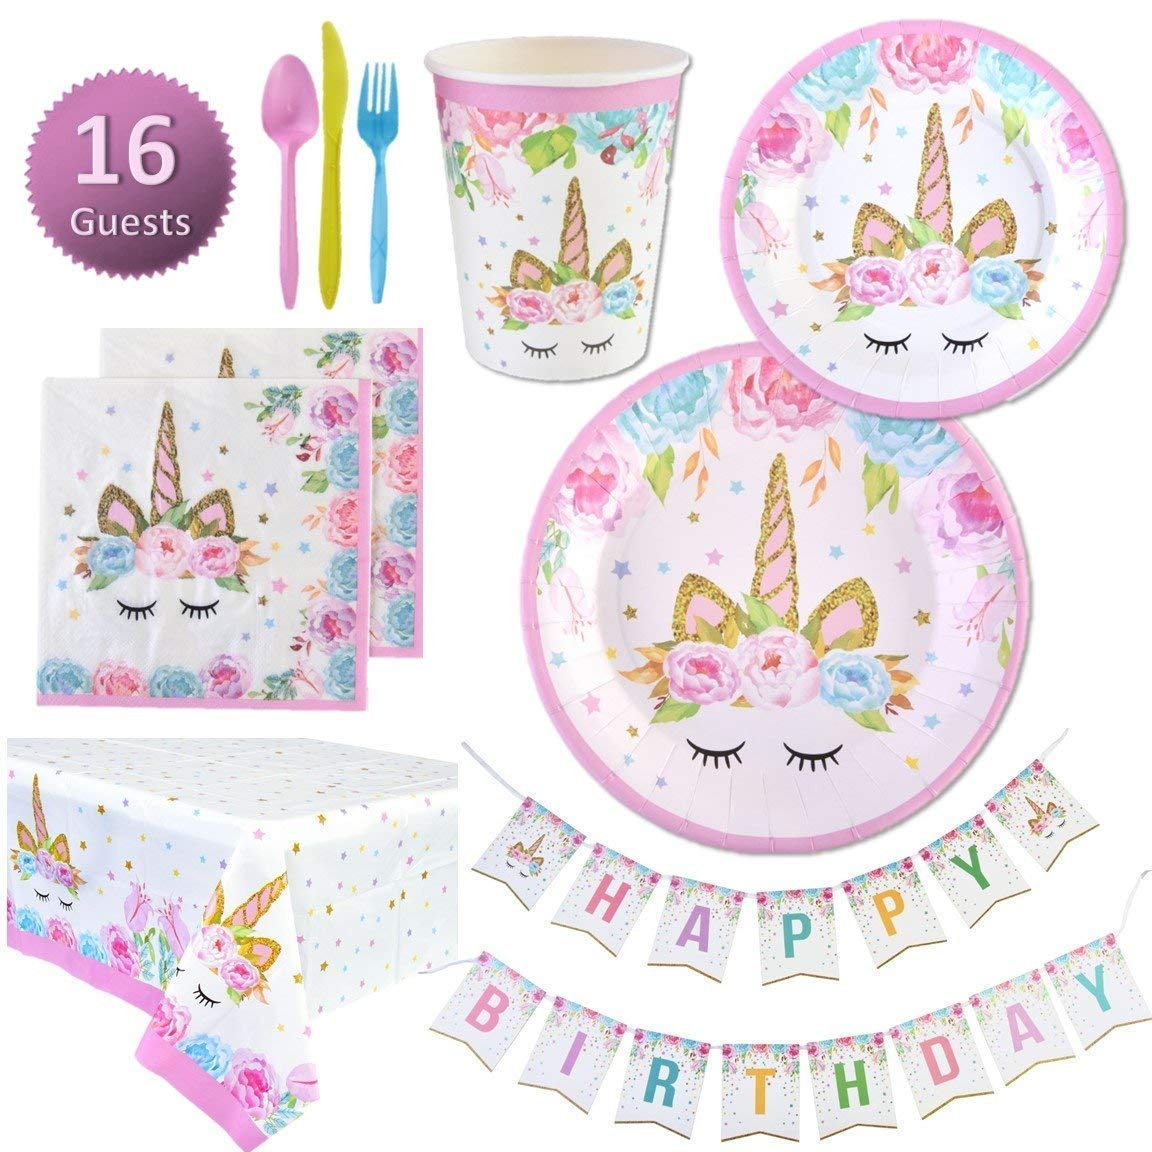 Unicorn Party Supplies Set | Unicorn Decorations and Tableware | Disposable and No Washing Up | Serves 16 - 114 Pieces by Party People by Party People